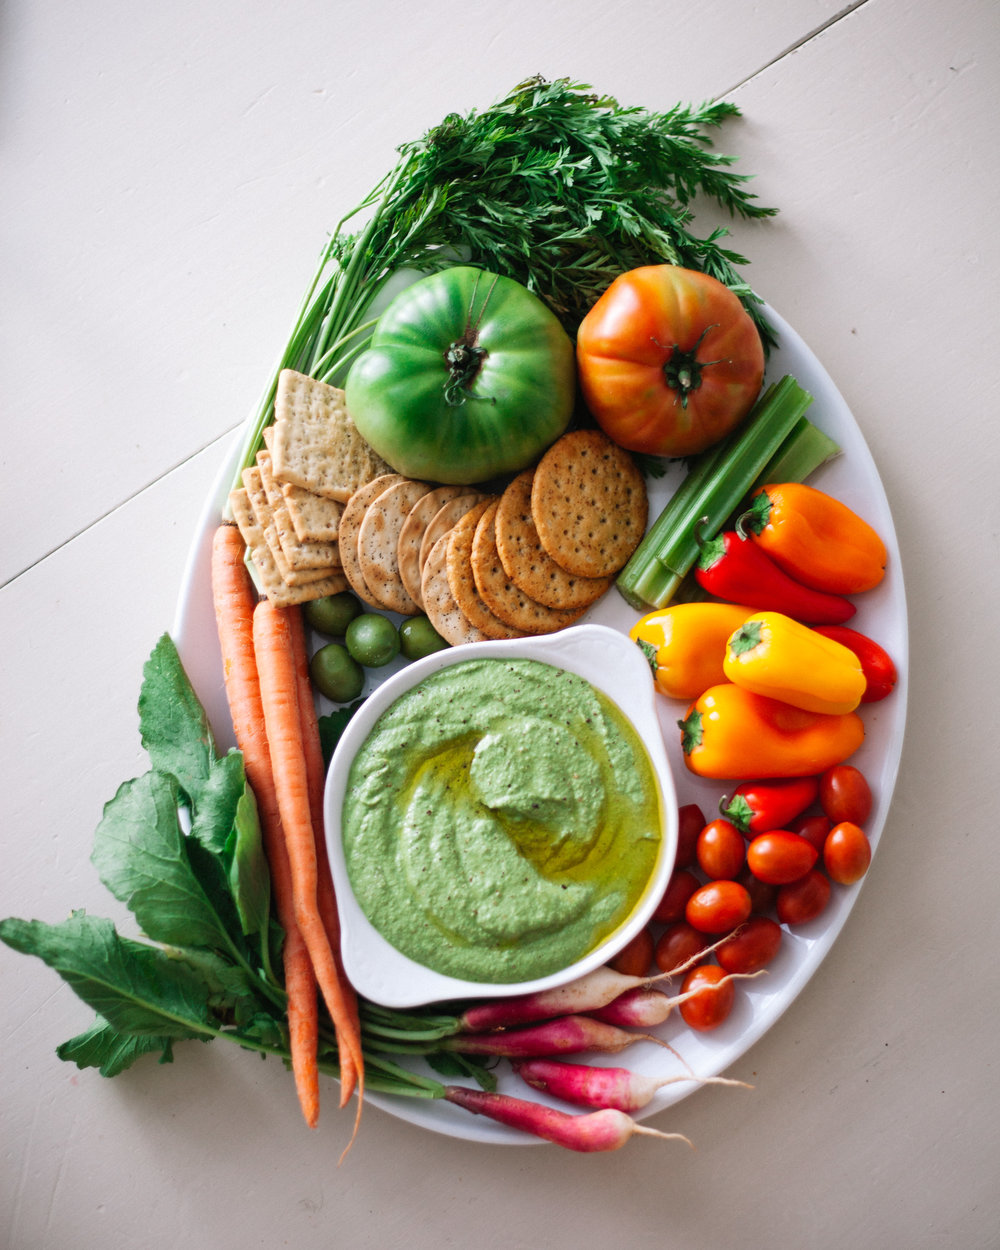 Autumn Crudité Platter with Pesto Ricotta Dip